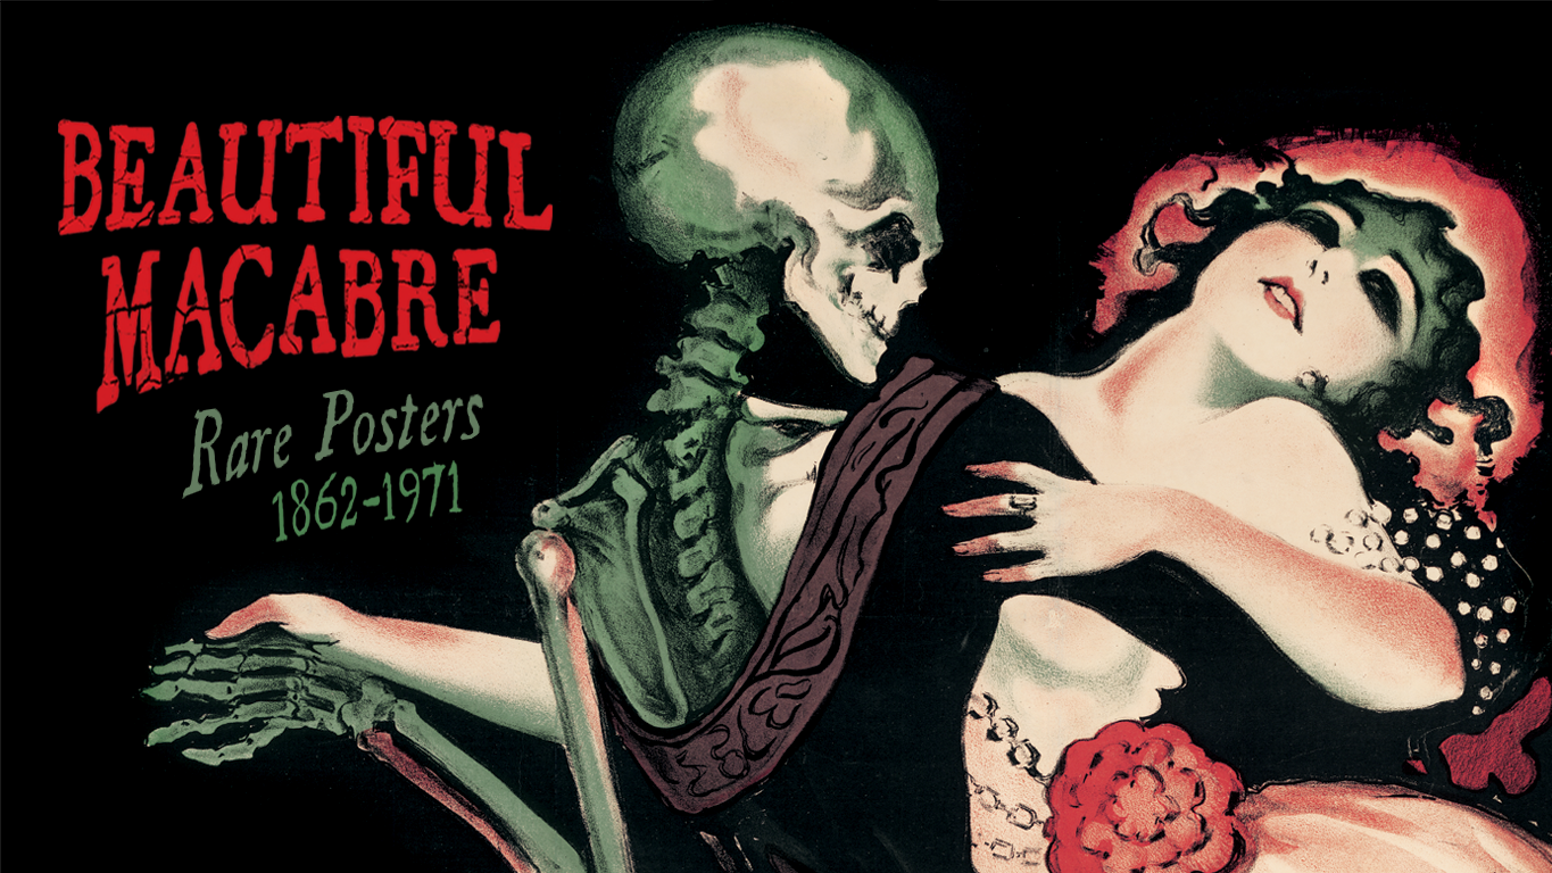 Sinister and sensual artworks from the Golden Age of Vintage Poster Art: Rare images from the Century Guild Museum of Art archives.